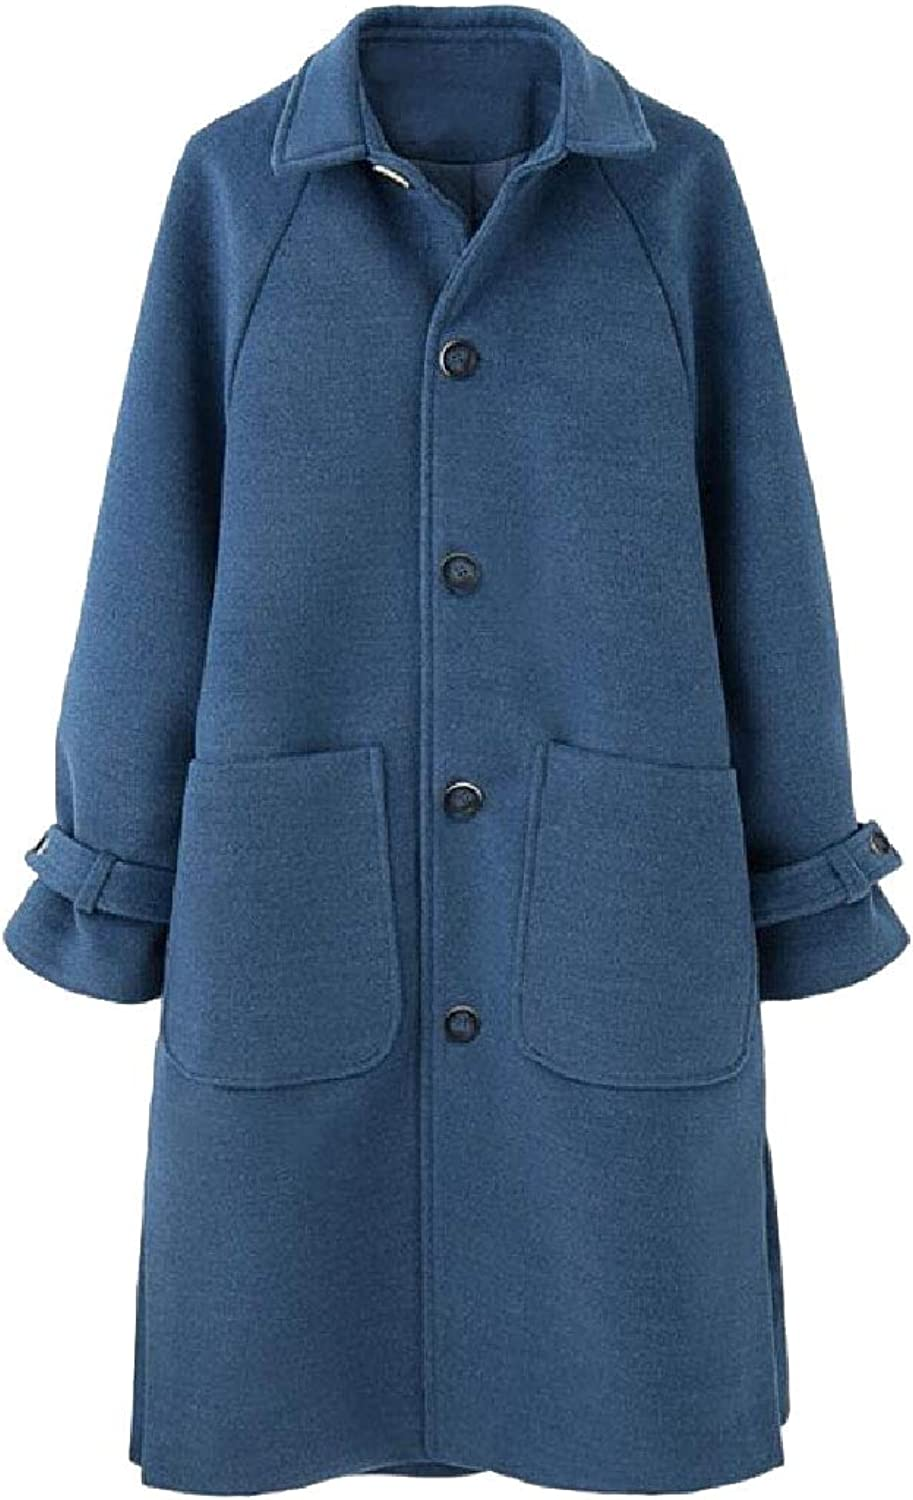 Maweisong Women's Lapel Single Breasted Length LongSleeved Classic Wool Trench